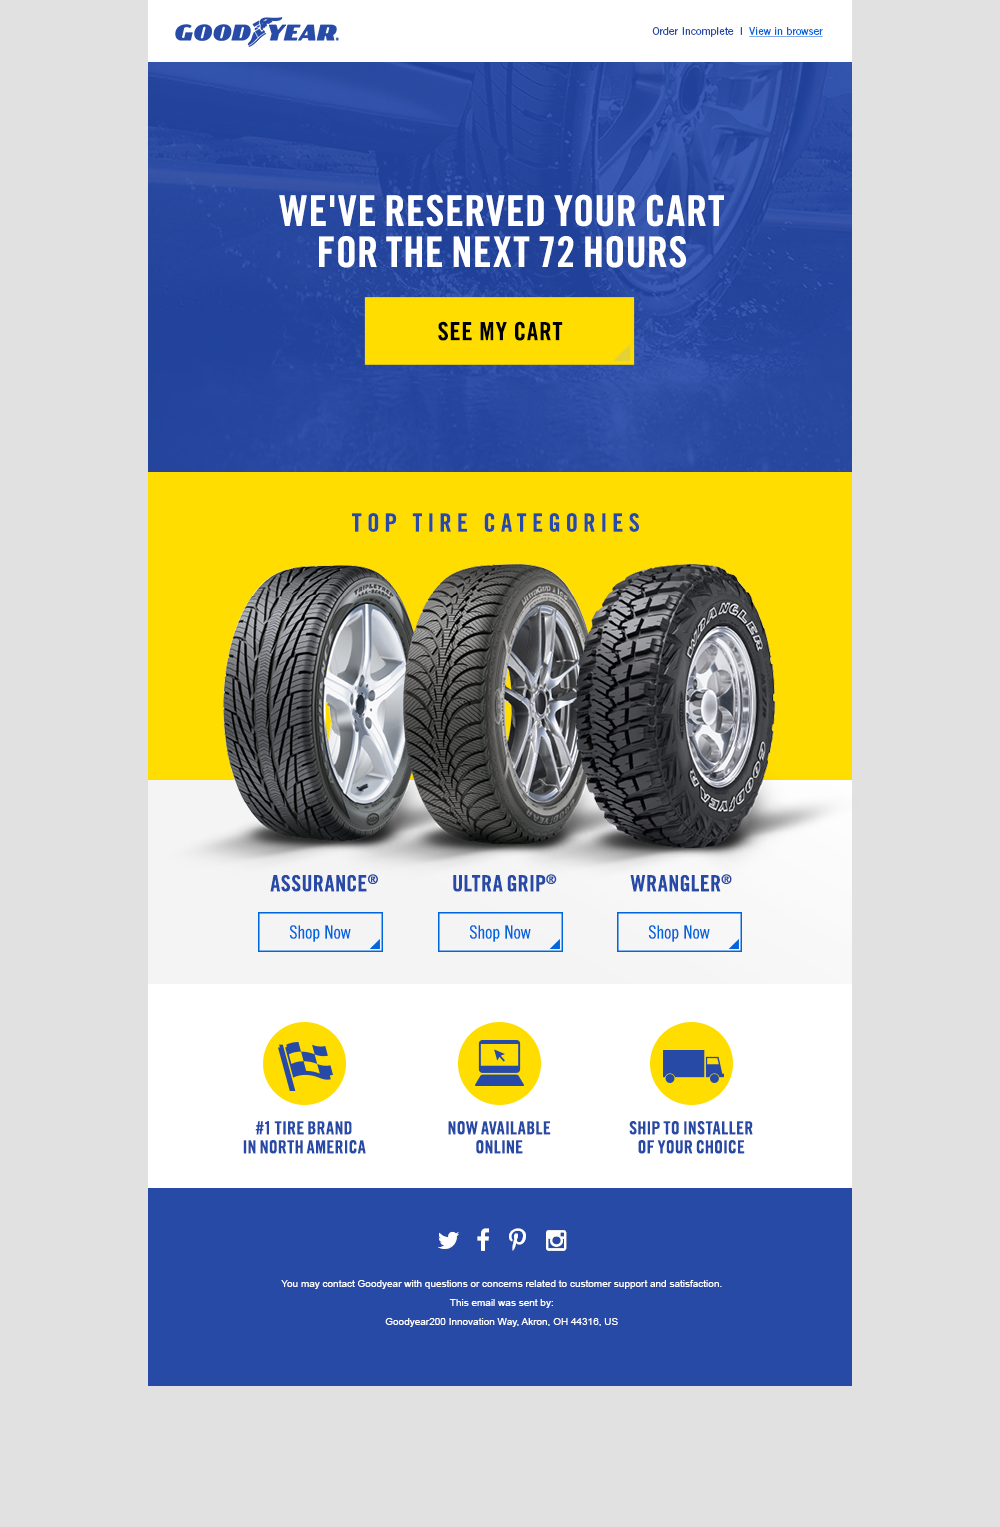 IBXCA_goodyear_113015_A.png